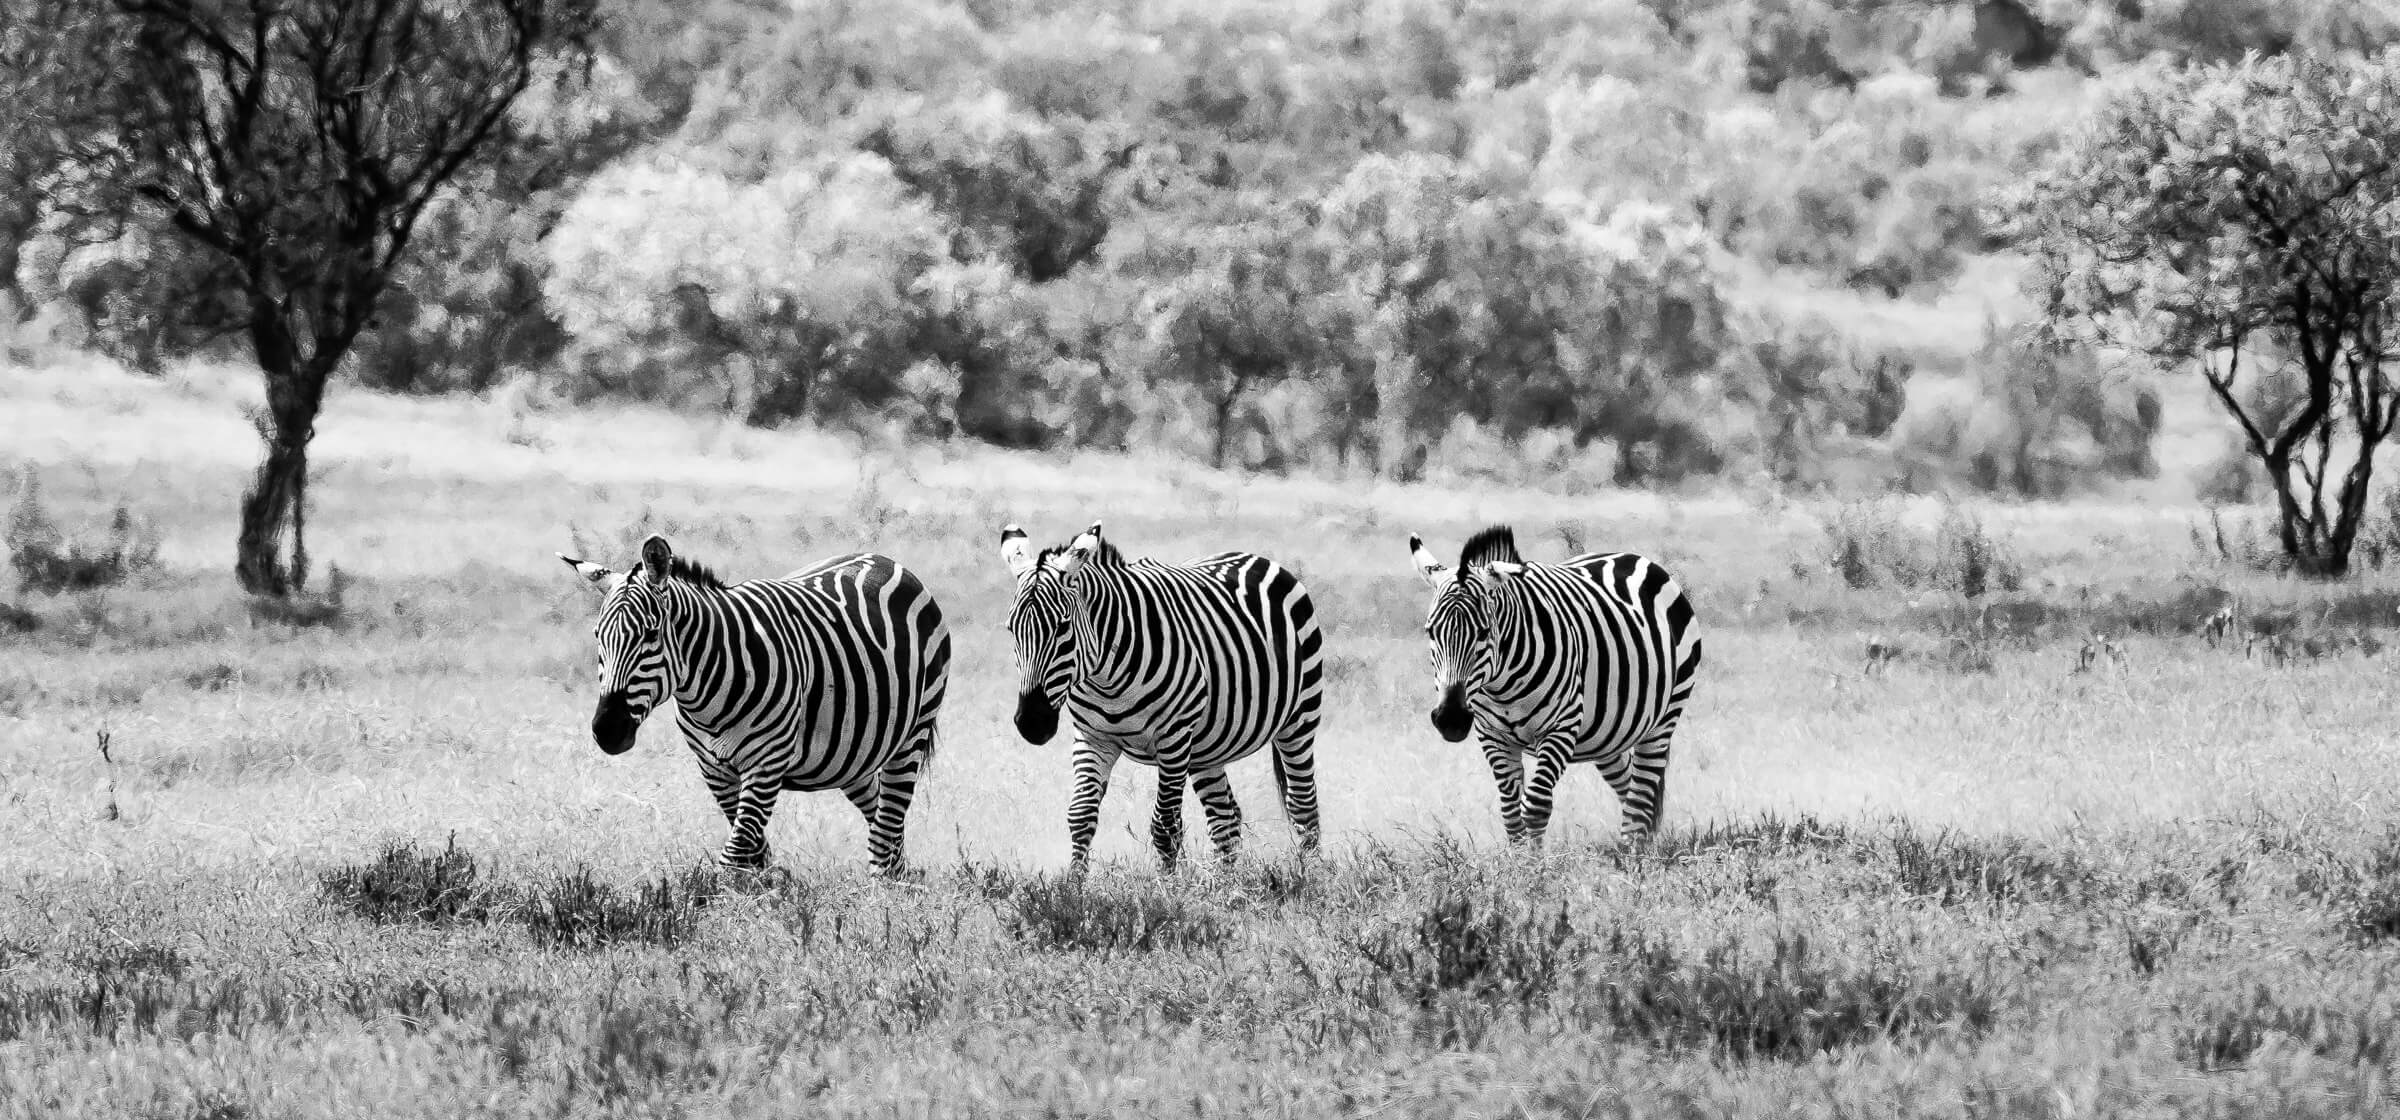 three zebras walking on the grassy plains of Hell's Gate in Kenya